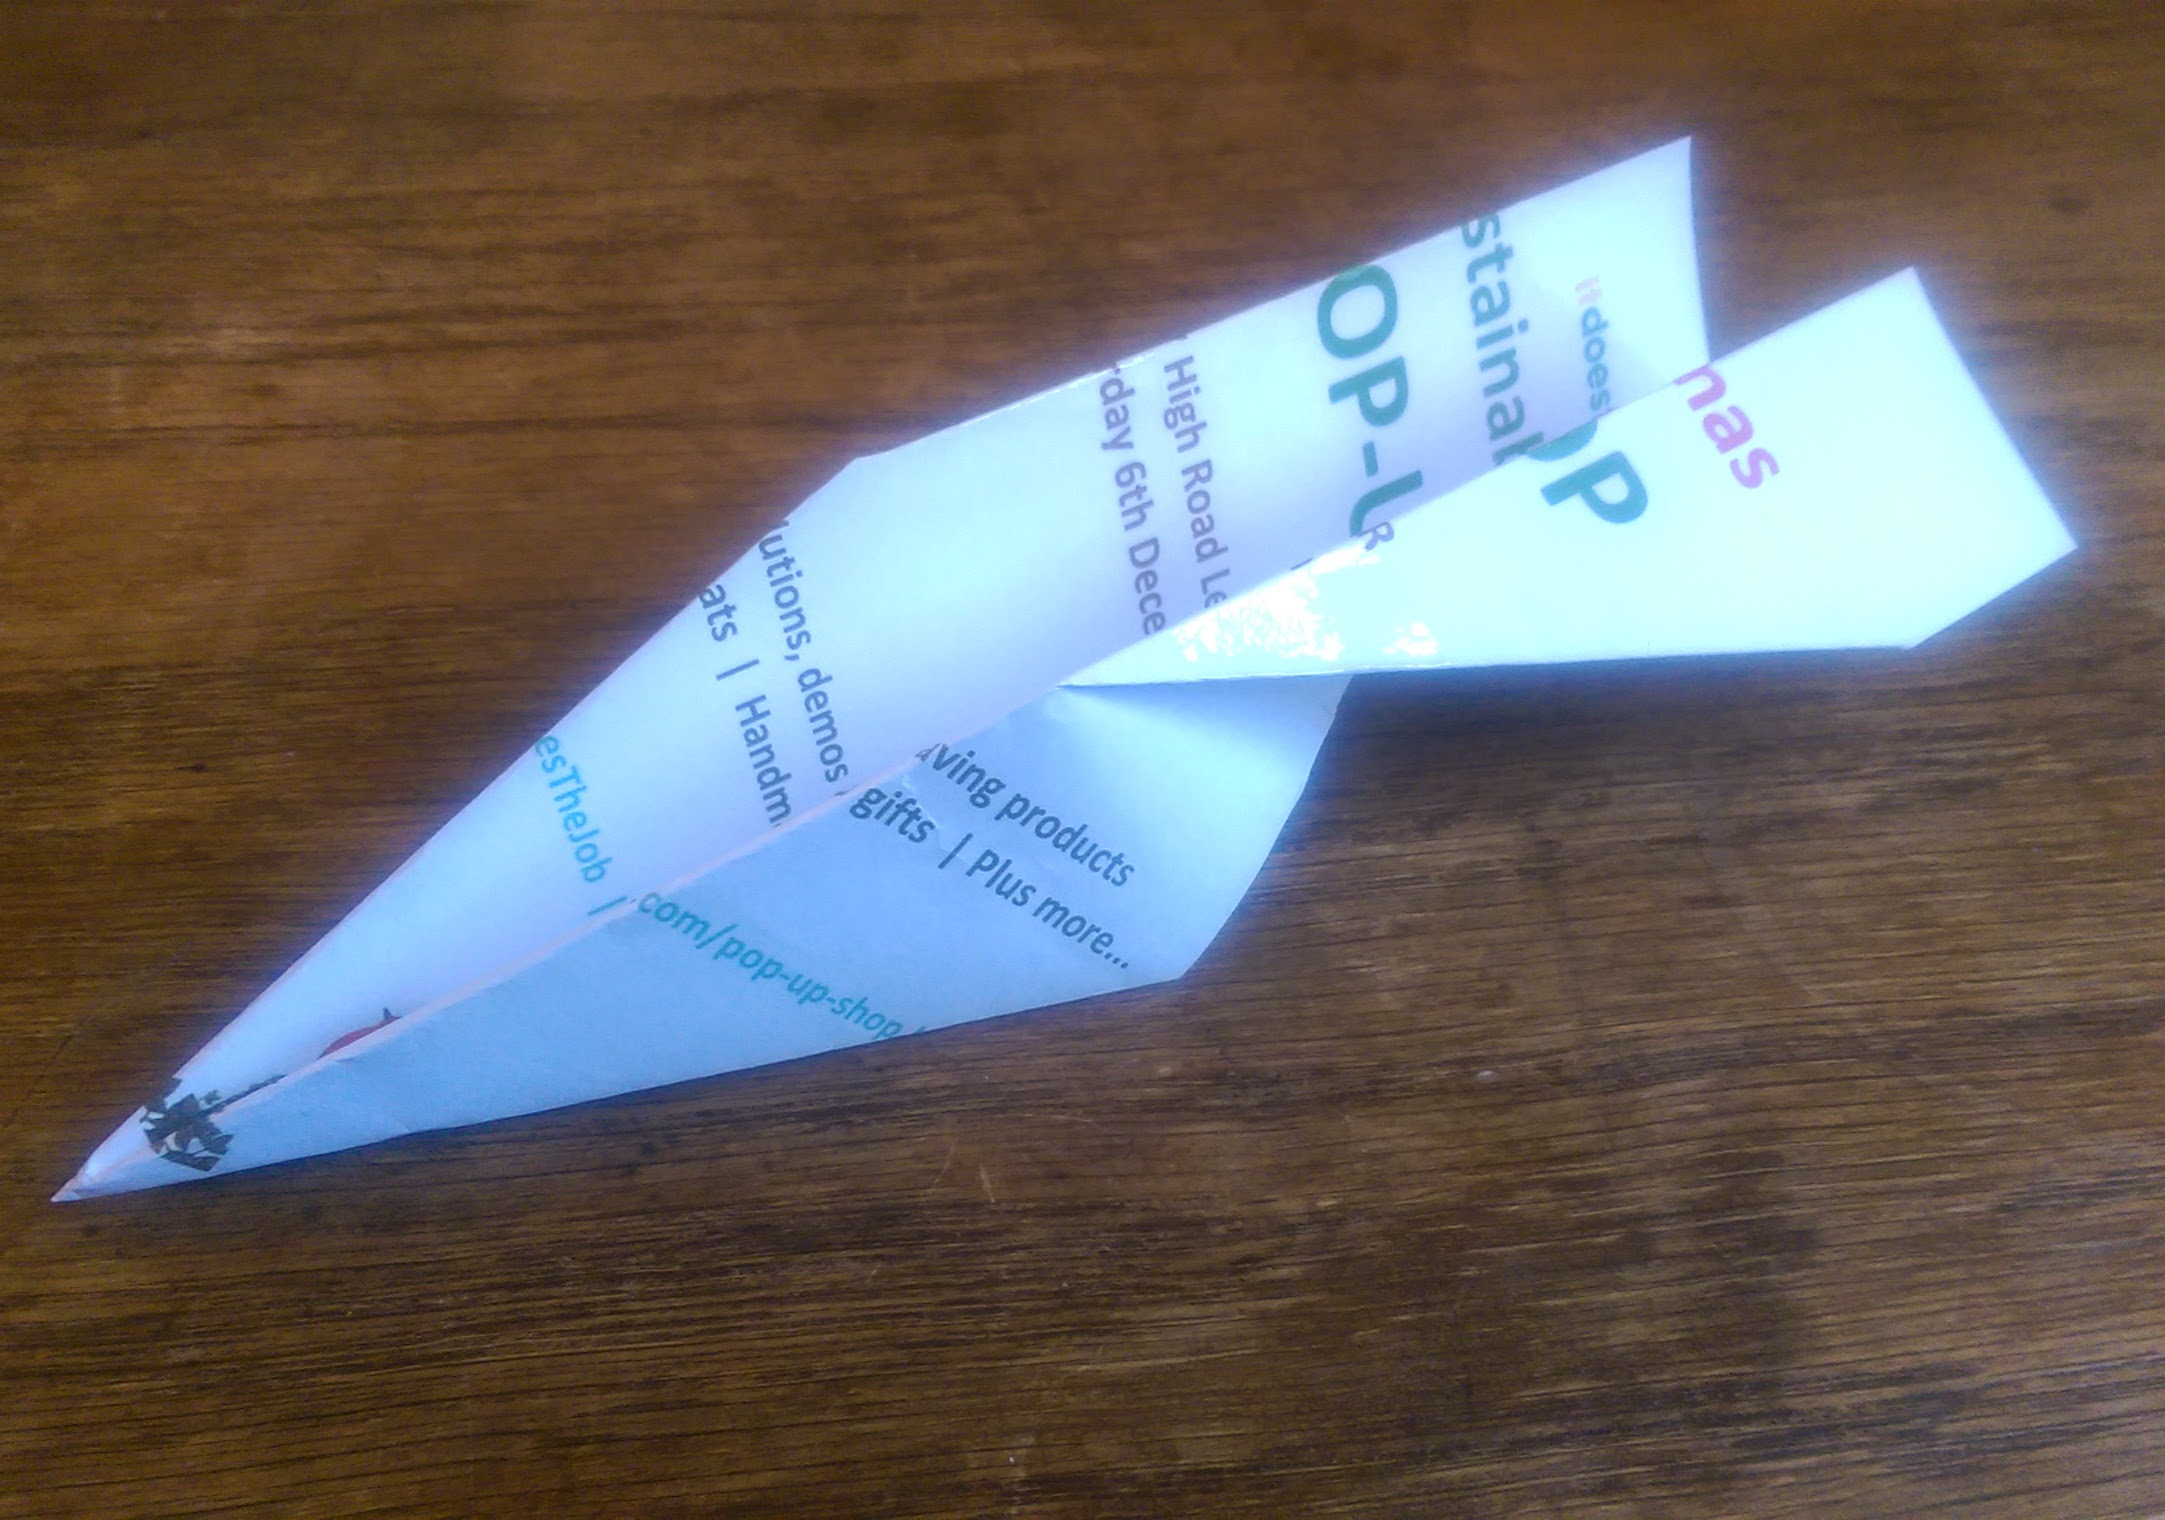 sustainable pop-up shop leaflet into paper areoplane